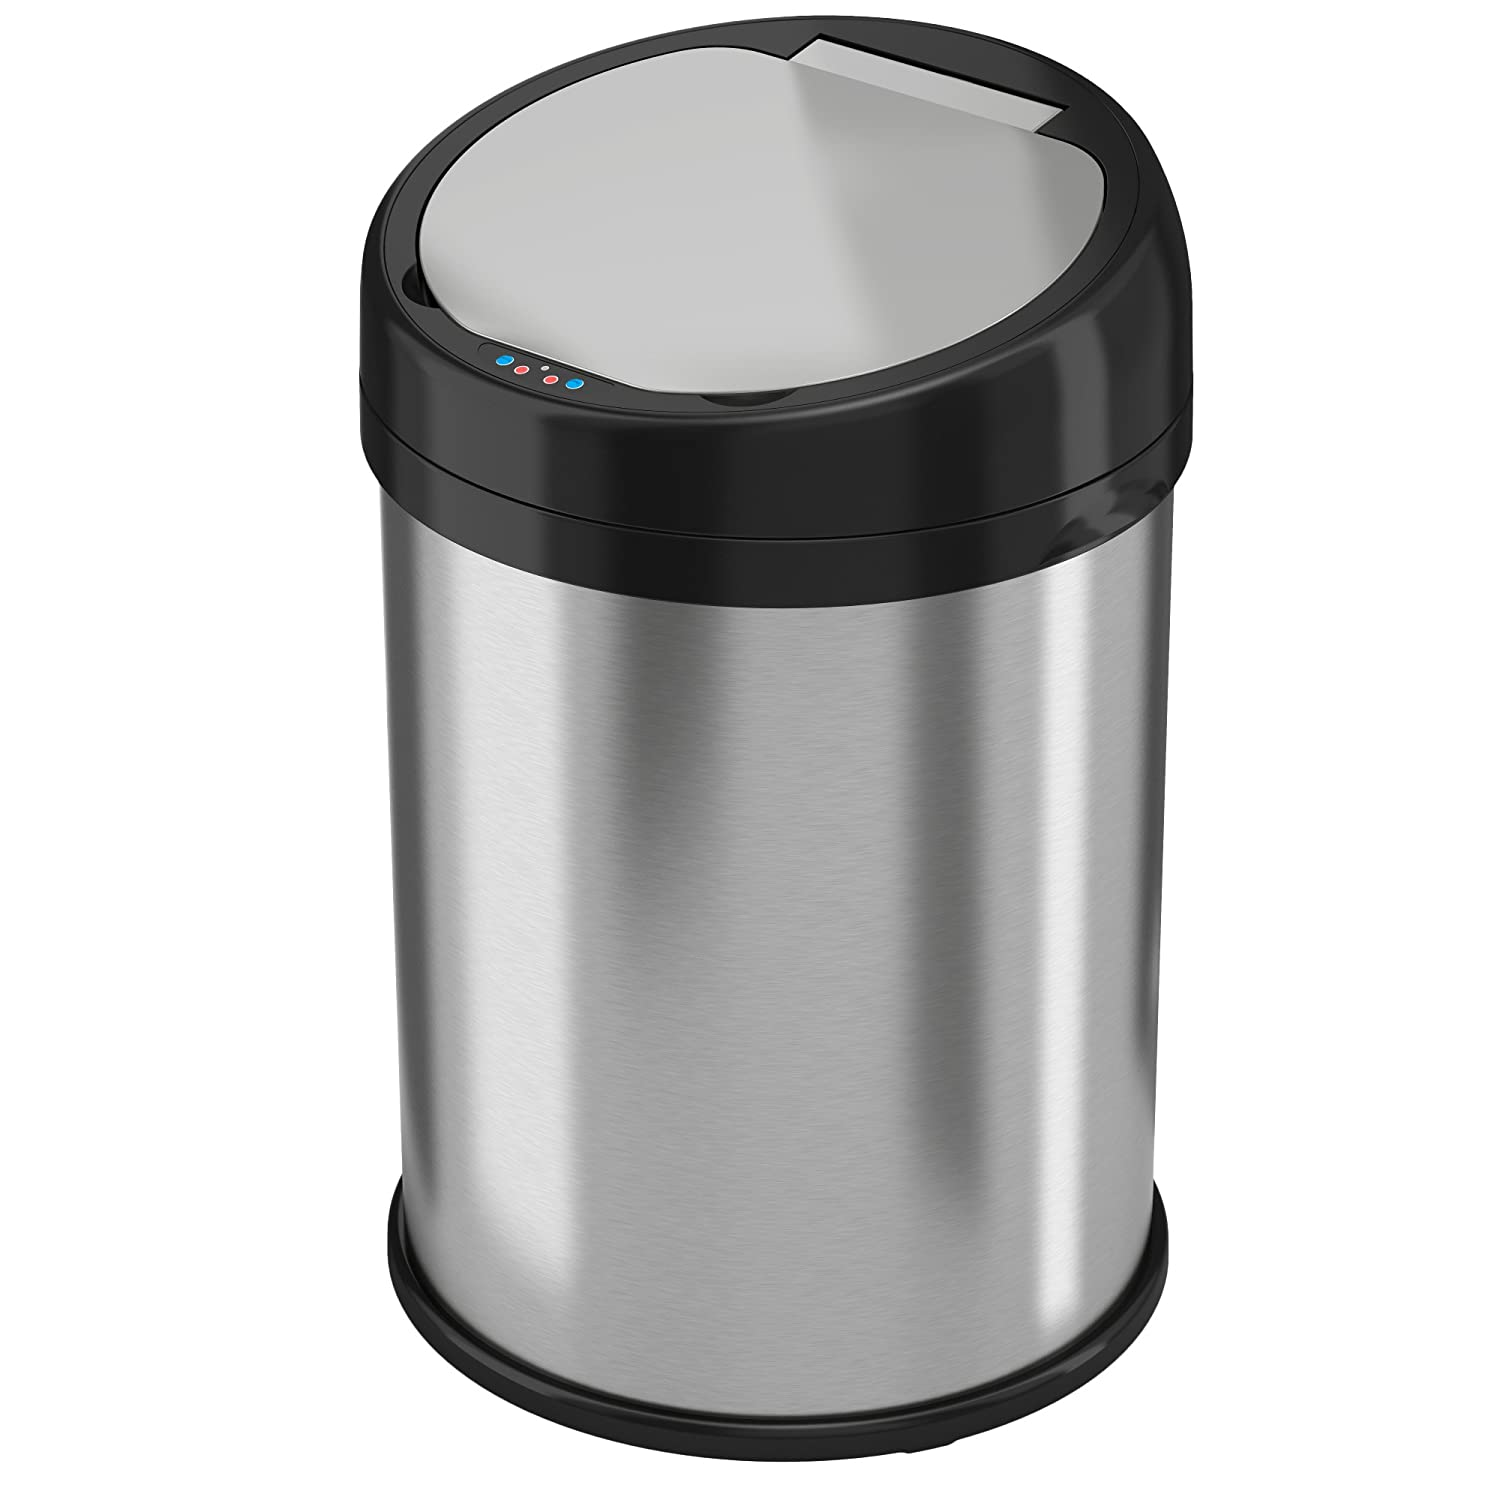 iTouchless 8 Gallon Stainless Steel Automatic Trash Can with Odor Control System, Round Sensor Touchless Kitchen Trash Bin 30 Liter IT08RS